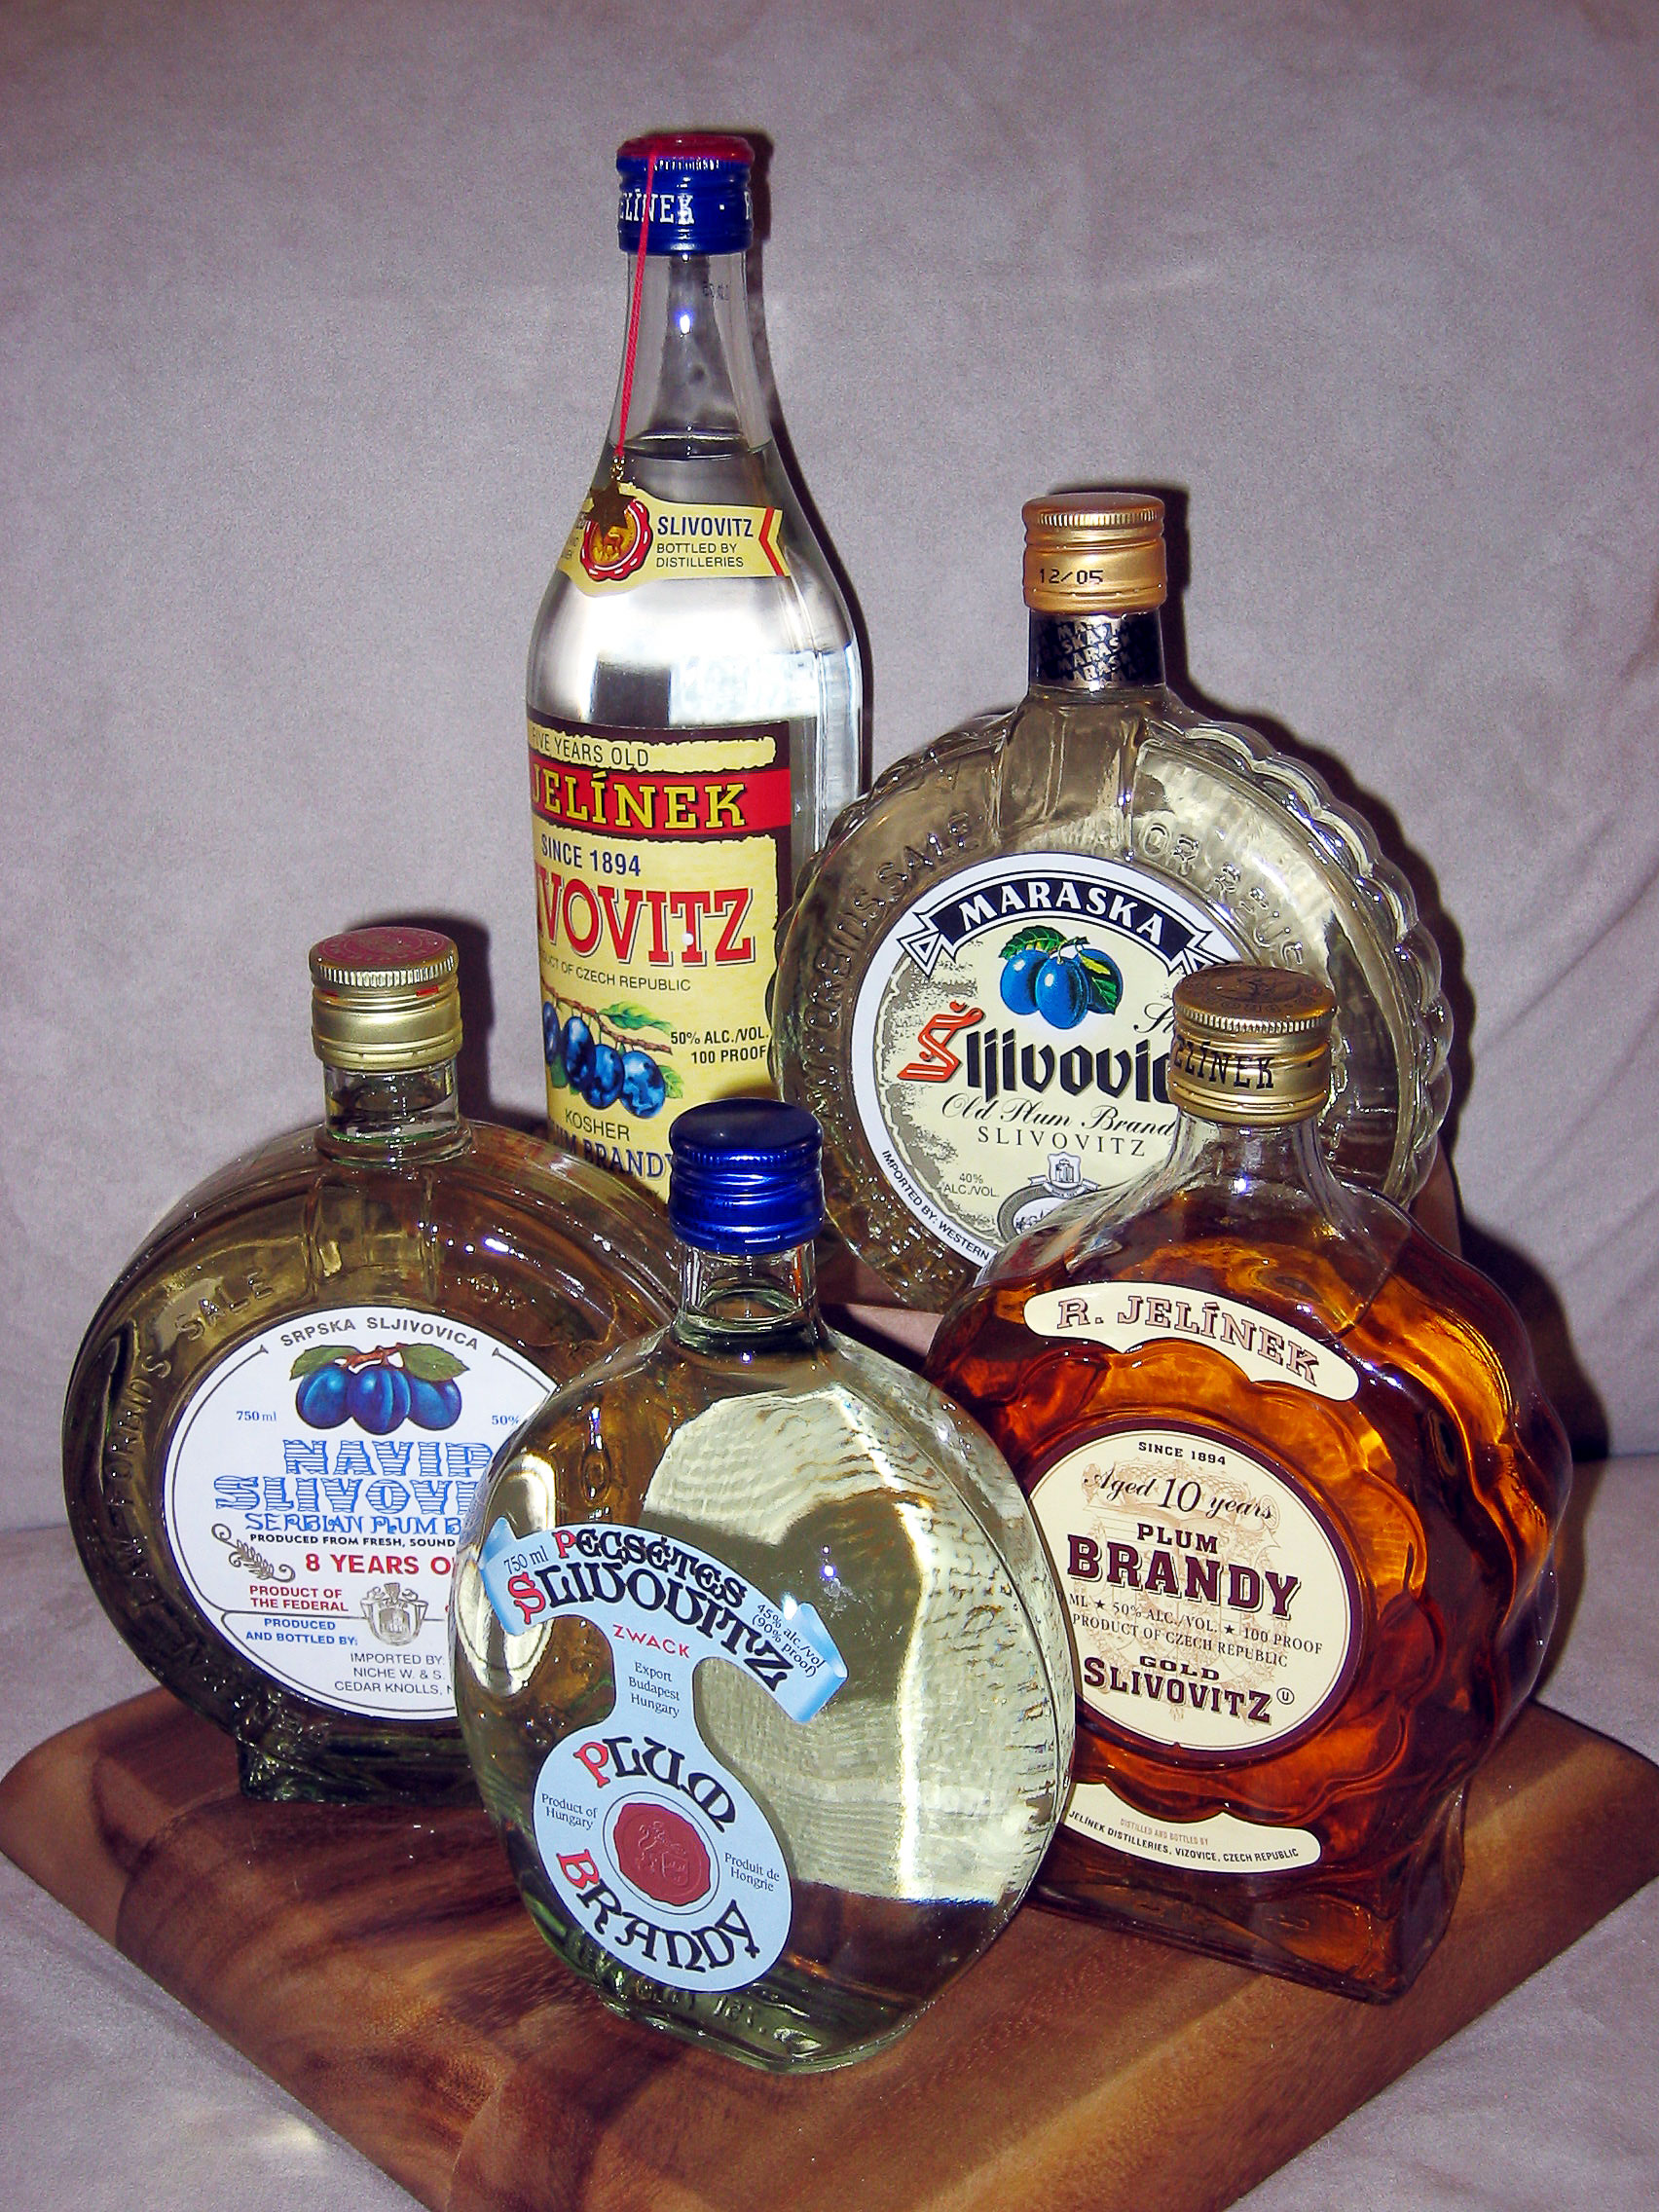 http://upload.wikimedia.org/wikipedia/commons/c/c0/Various_Bottles_of_Slivovitz.jpg